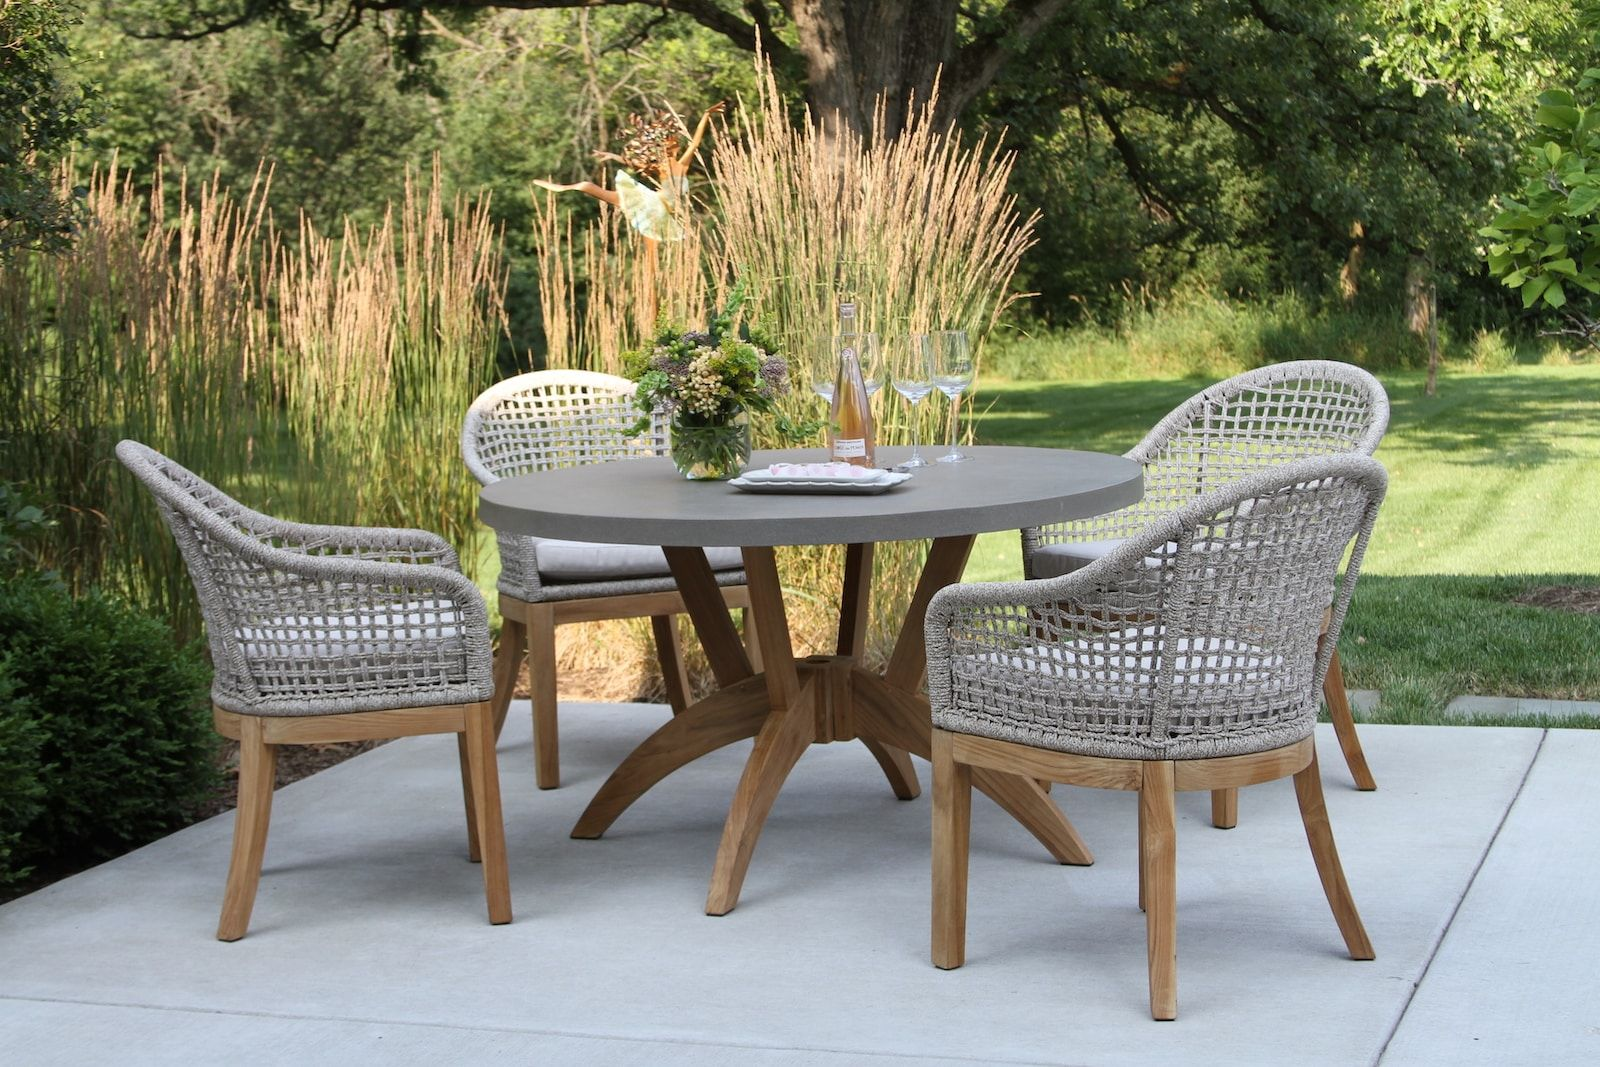 Nautical Rope Teak Dining Chairs With Sunbrella 2pk In 2020